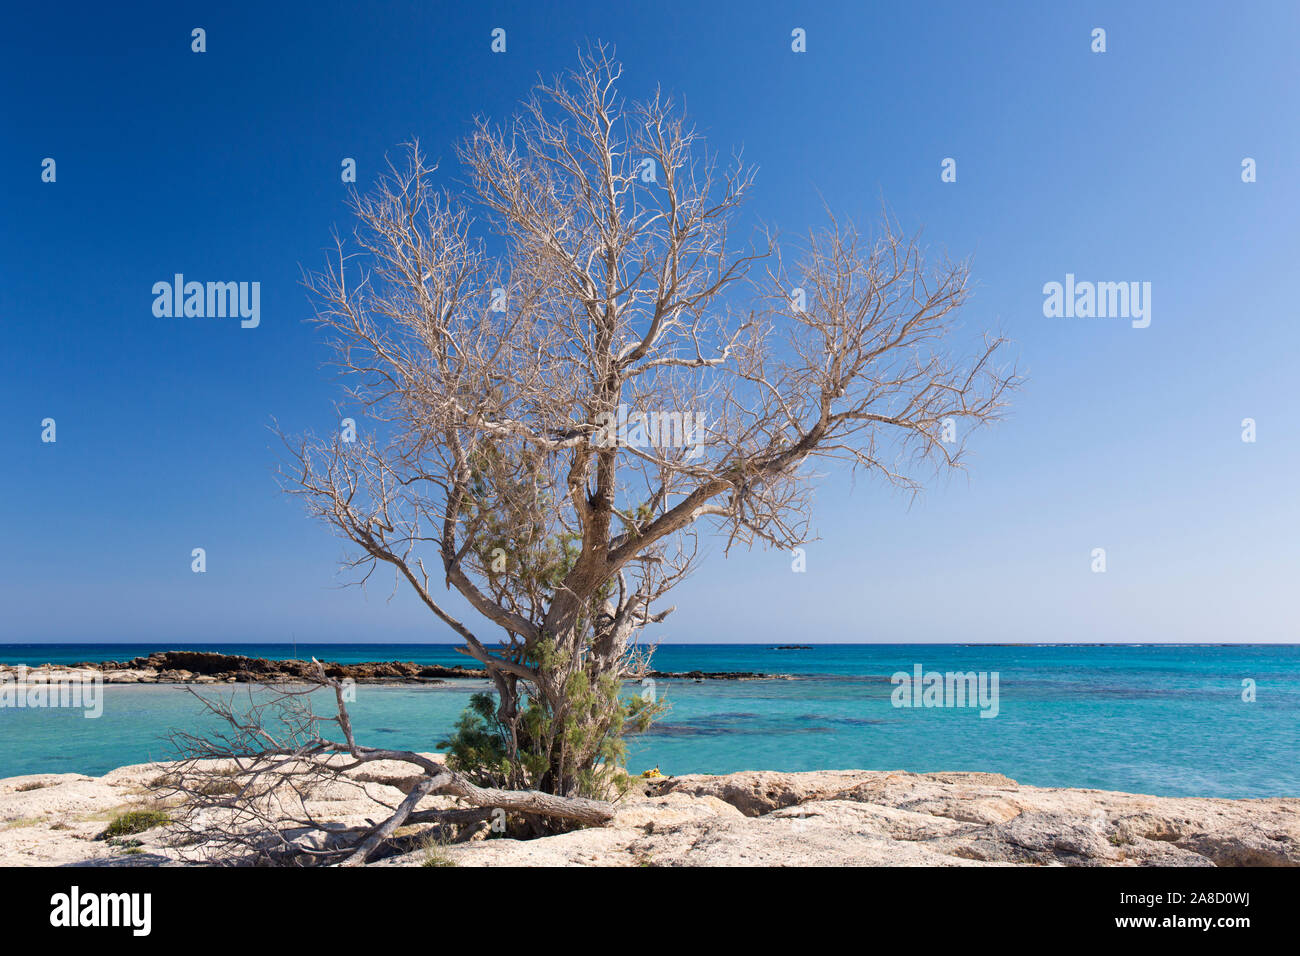 Elafonisi, Chania, Crete, Greece. Lone tree on rocky outcrop above the clear turquoise waters of Vroulia Bay. Stock Photo